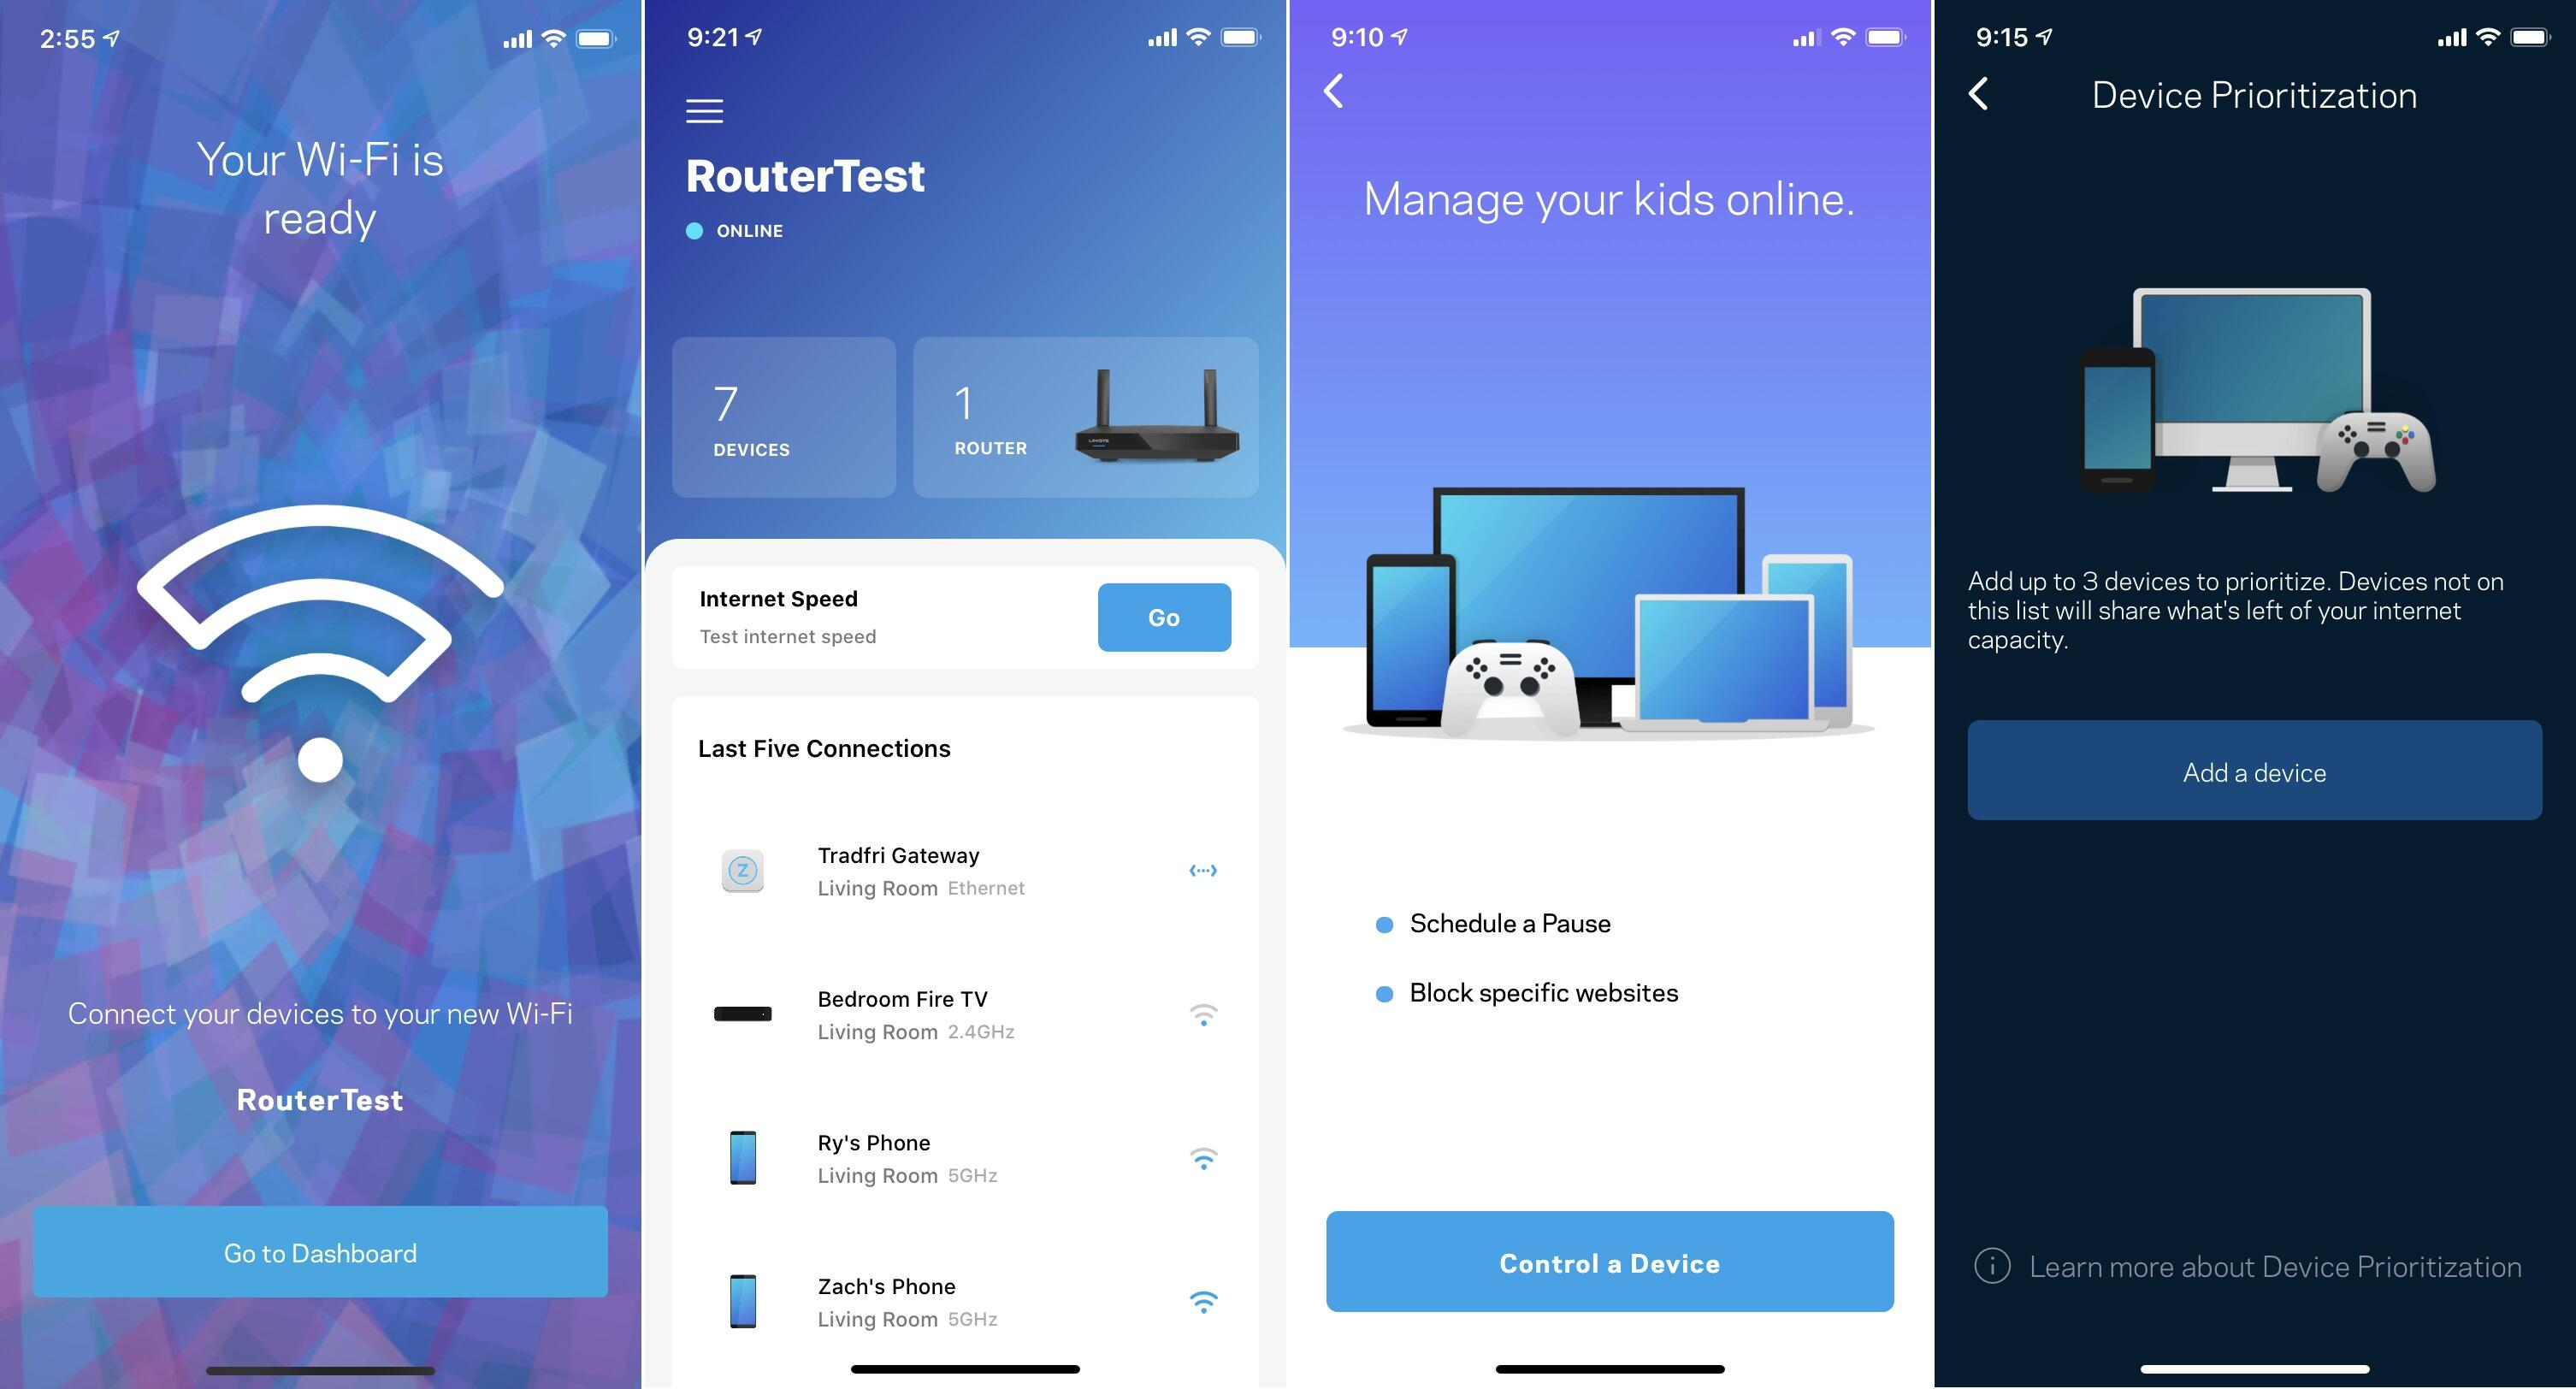 linksys-mr7350-wi-fi-6-router-app-controls